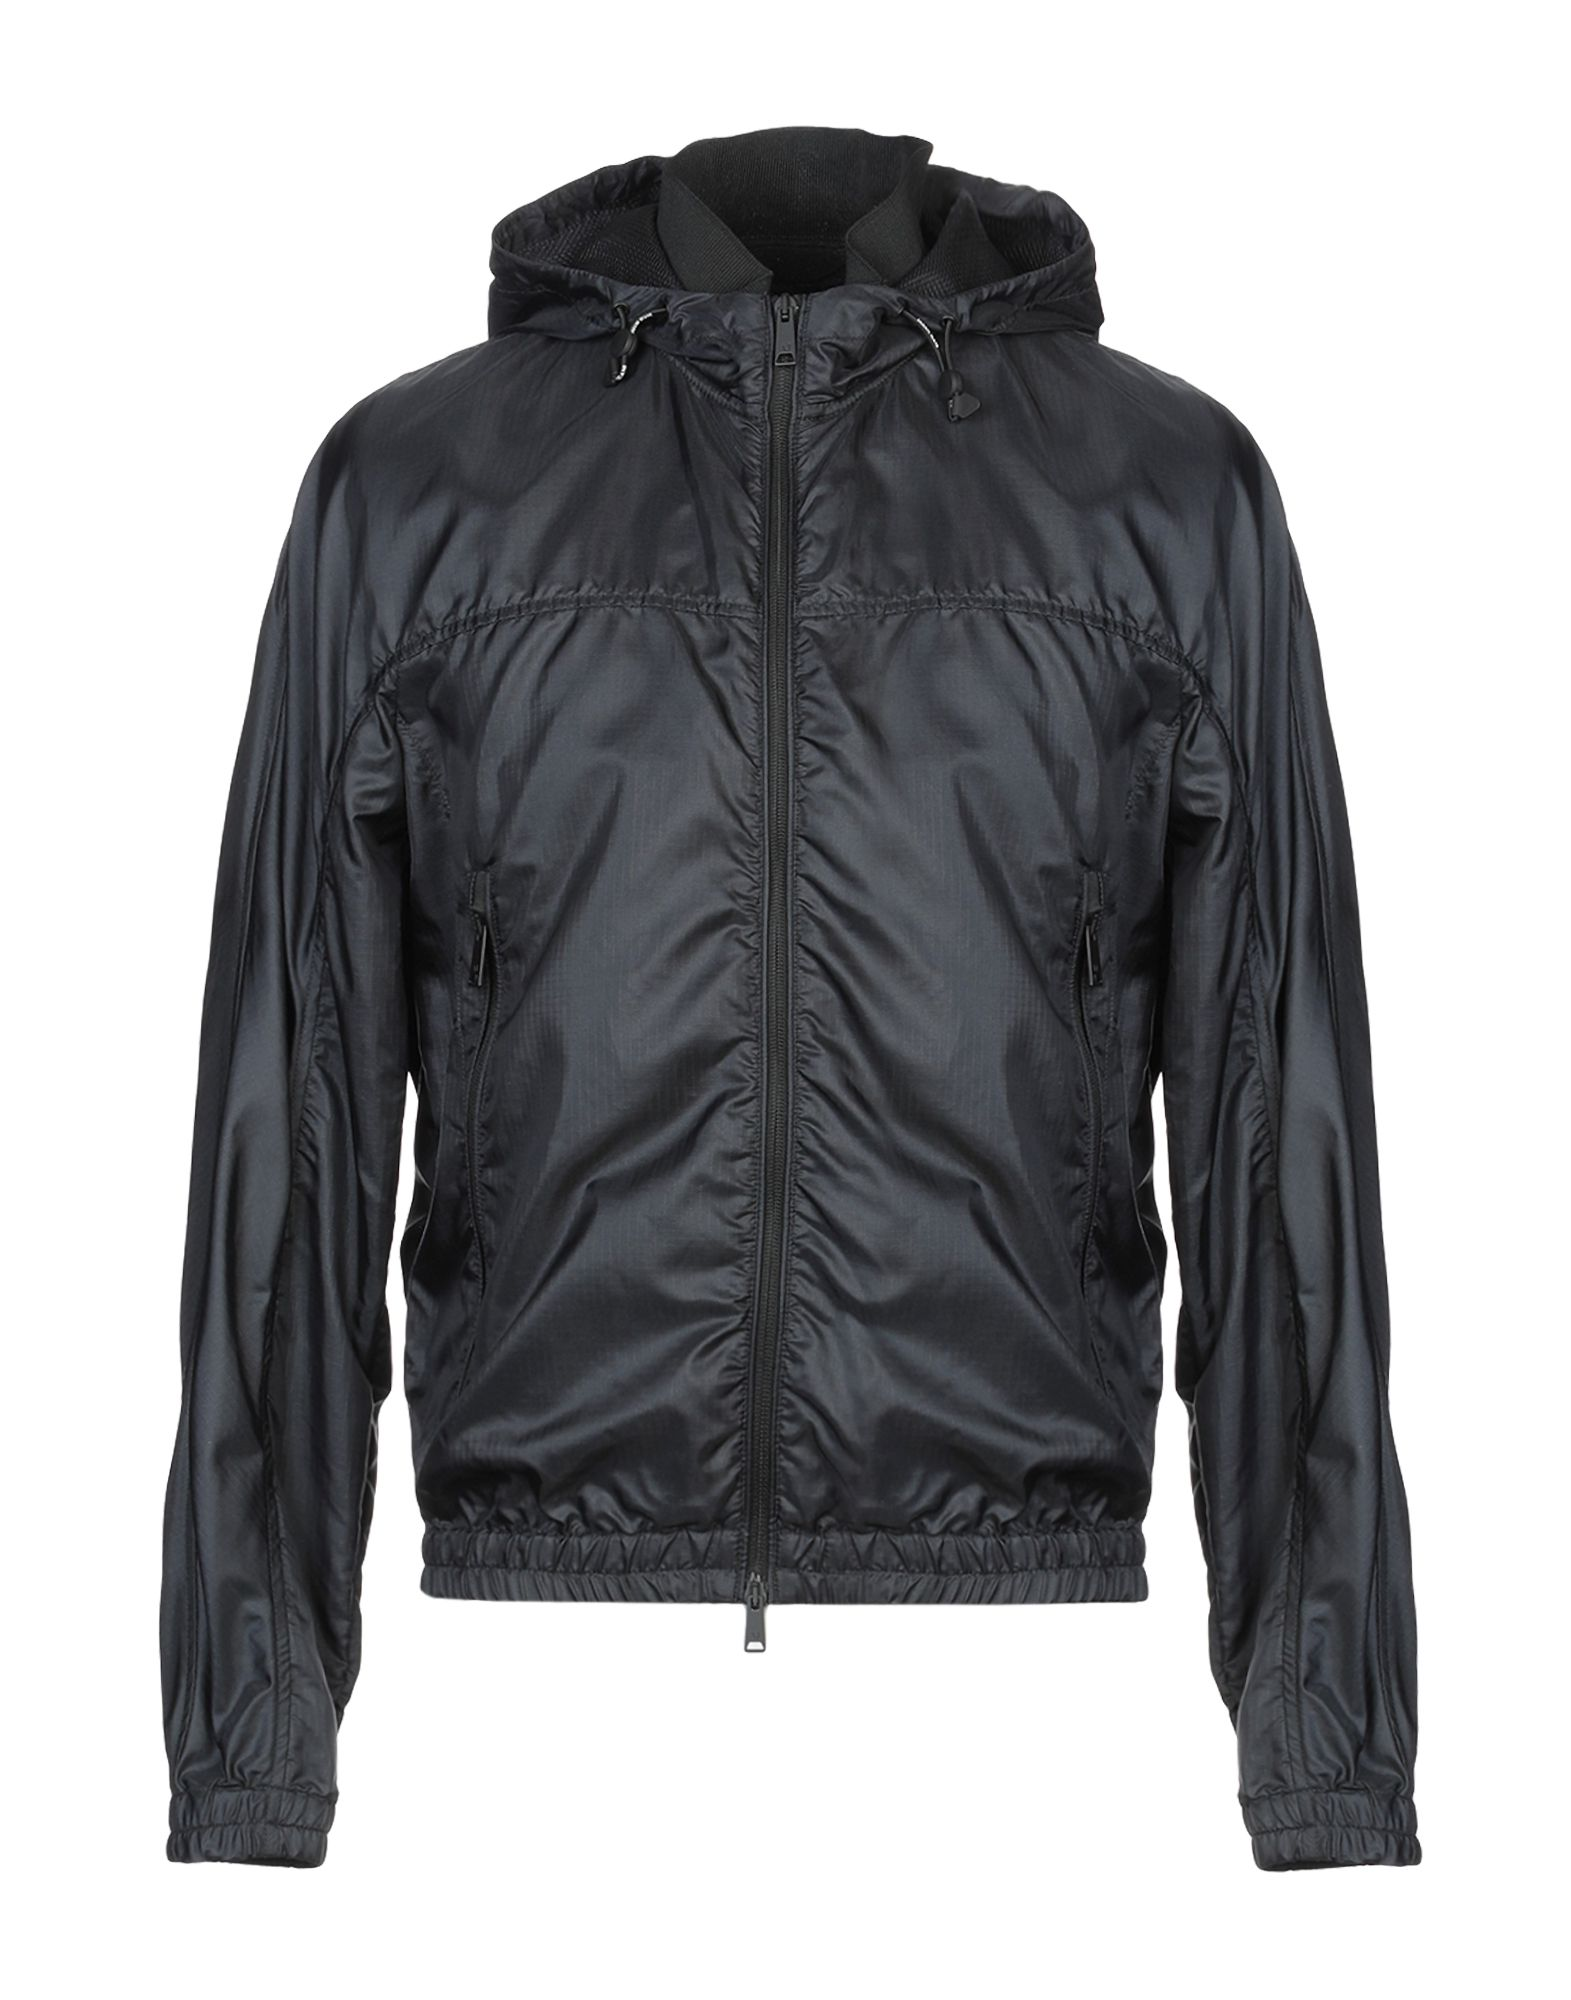 better the latest casual shoes ARMANI JEANS Jacket - Coats and Jackets | YOOX.COM